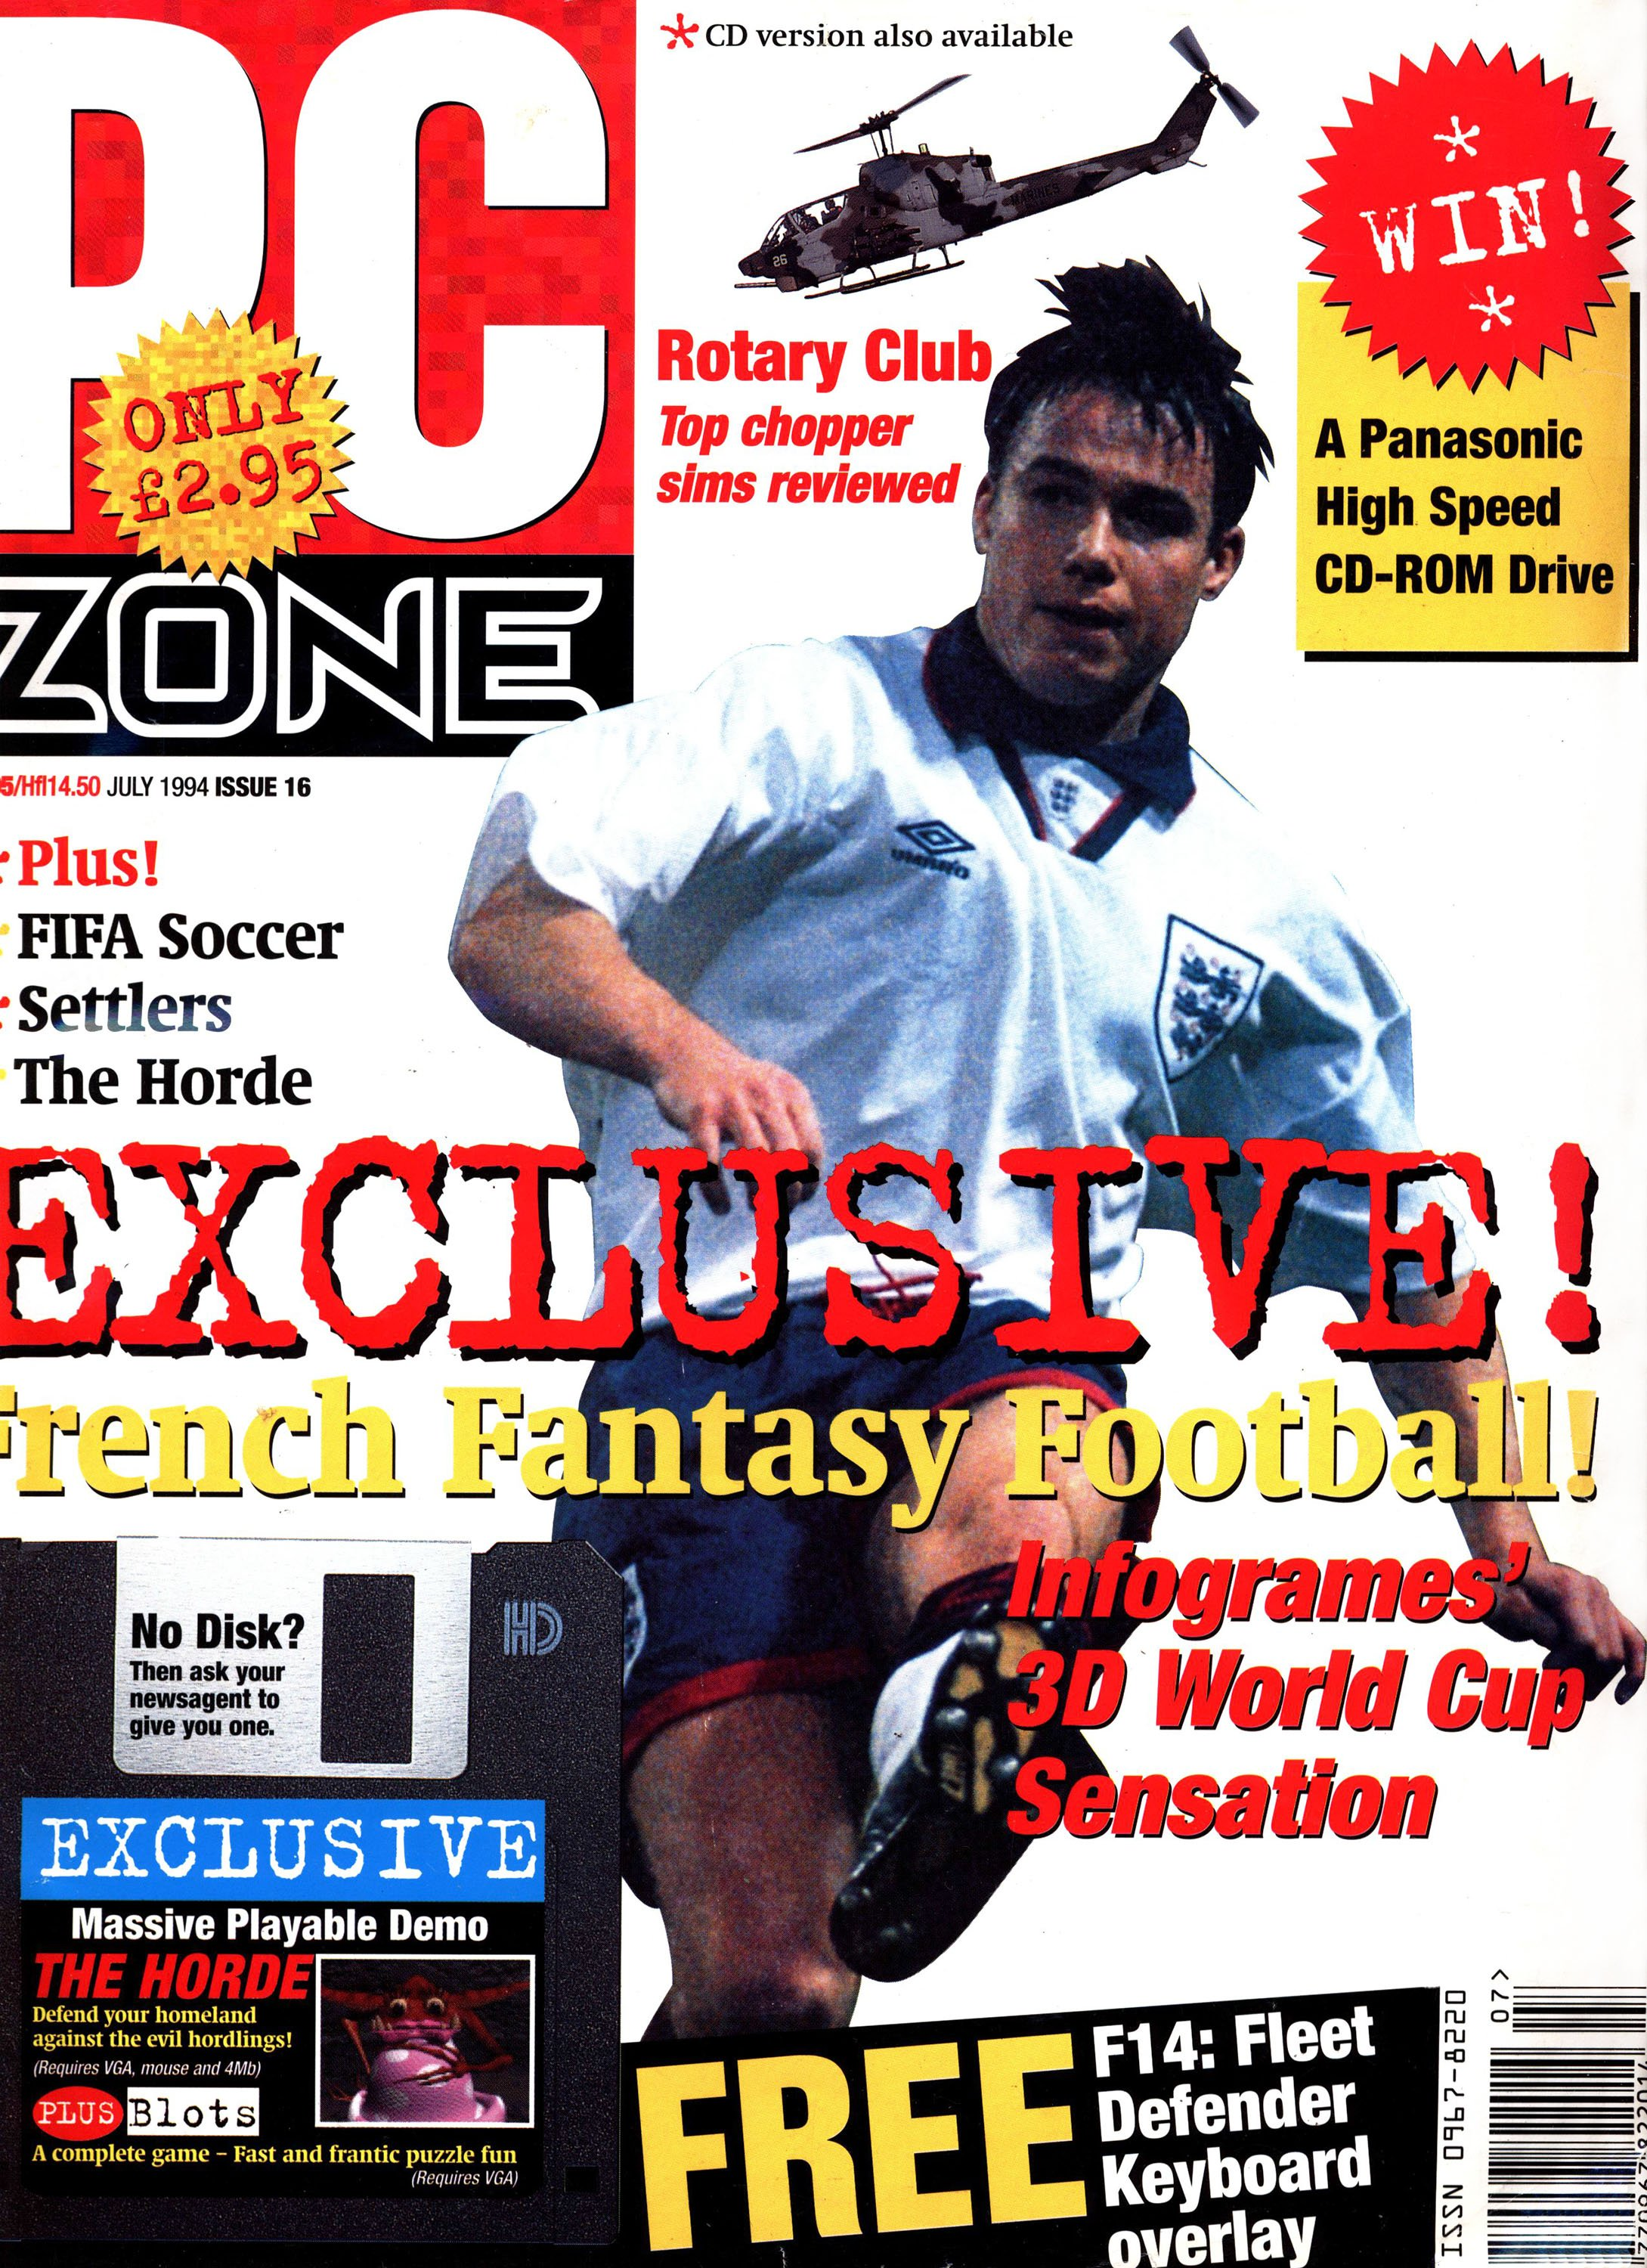 PC Zone Issue 016 (July 1994)